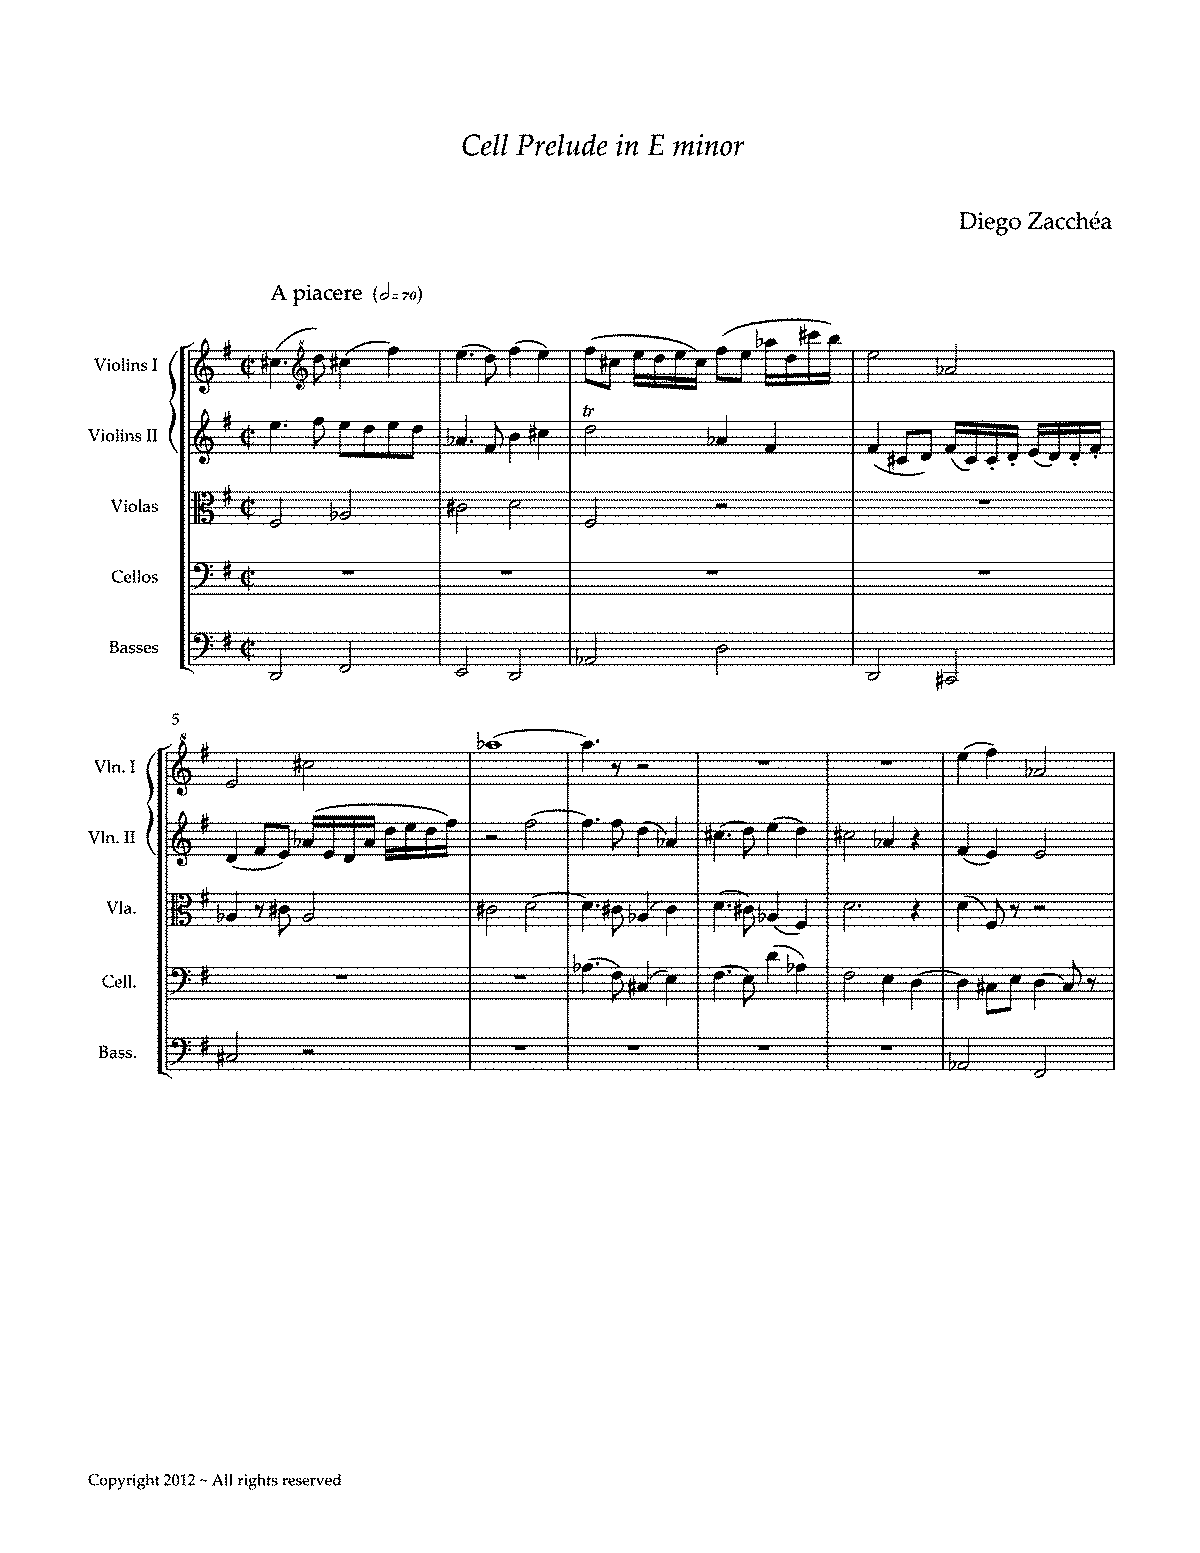 PMLP389027-Cell Prelude in E minor by Diego Zacchéa.pdf